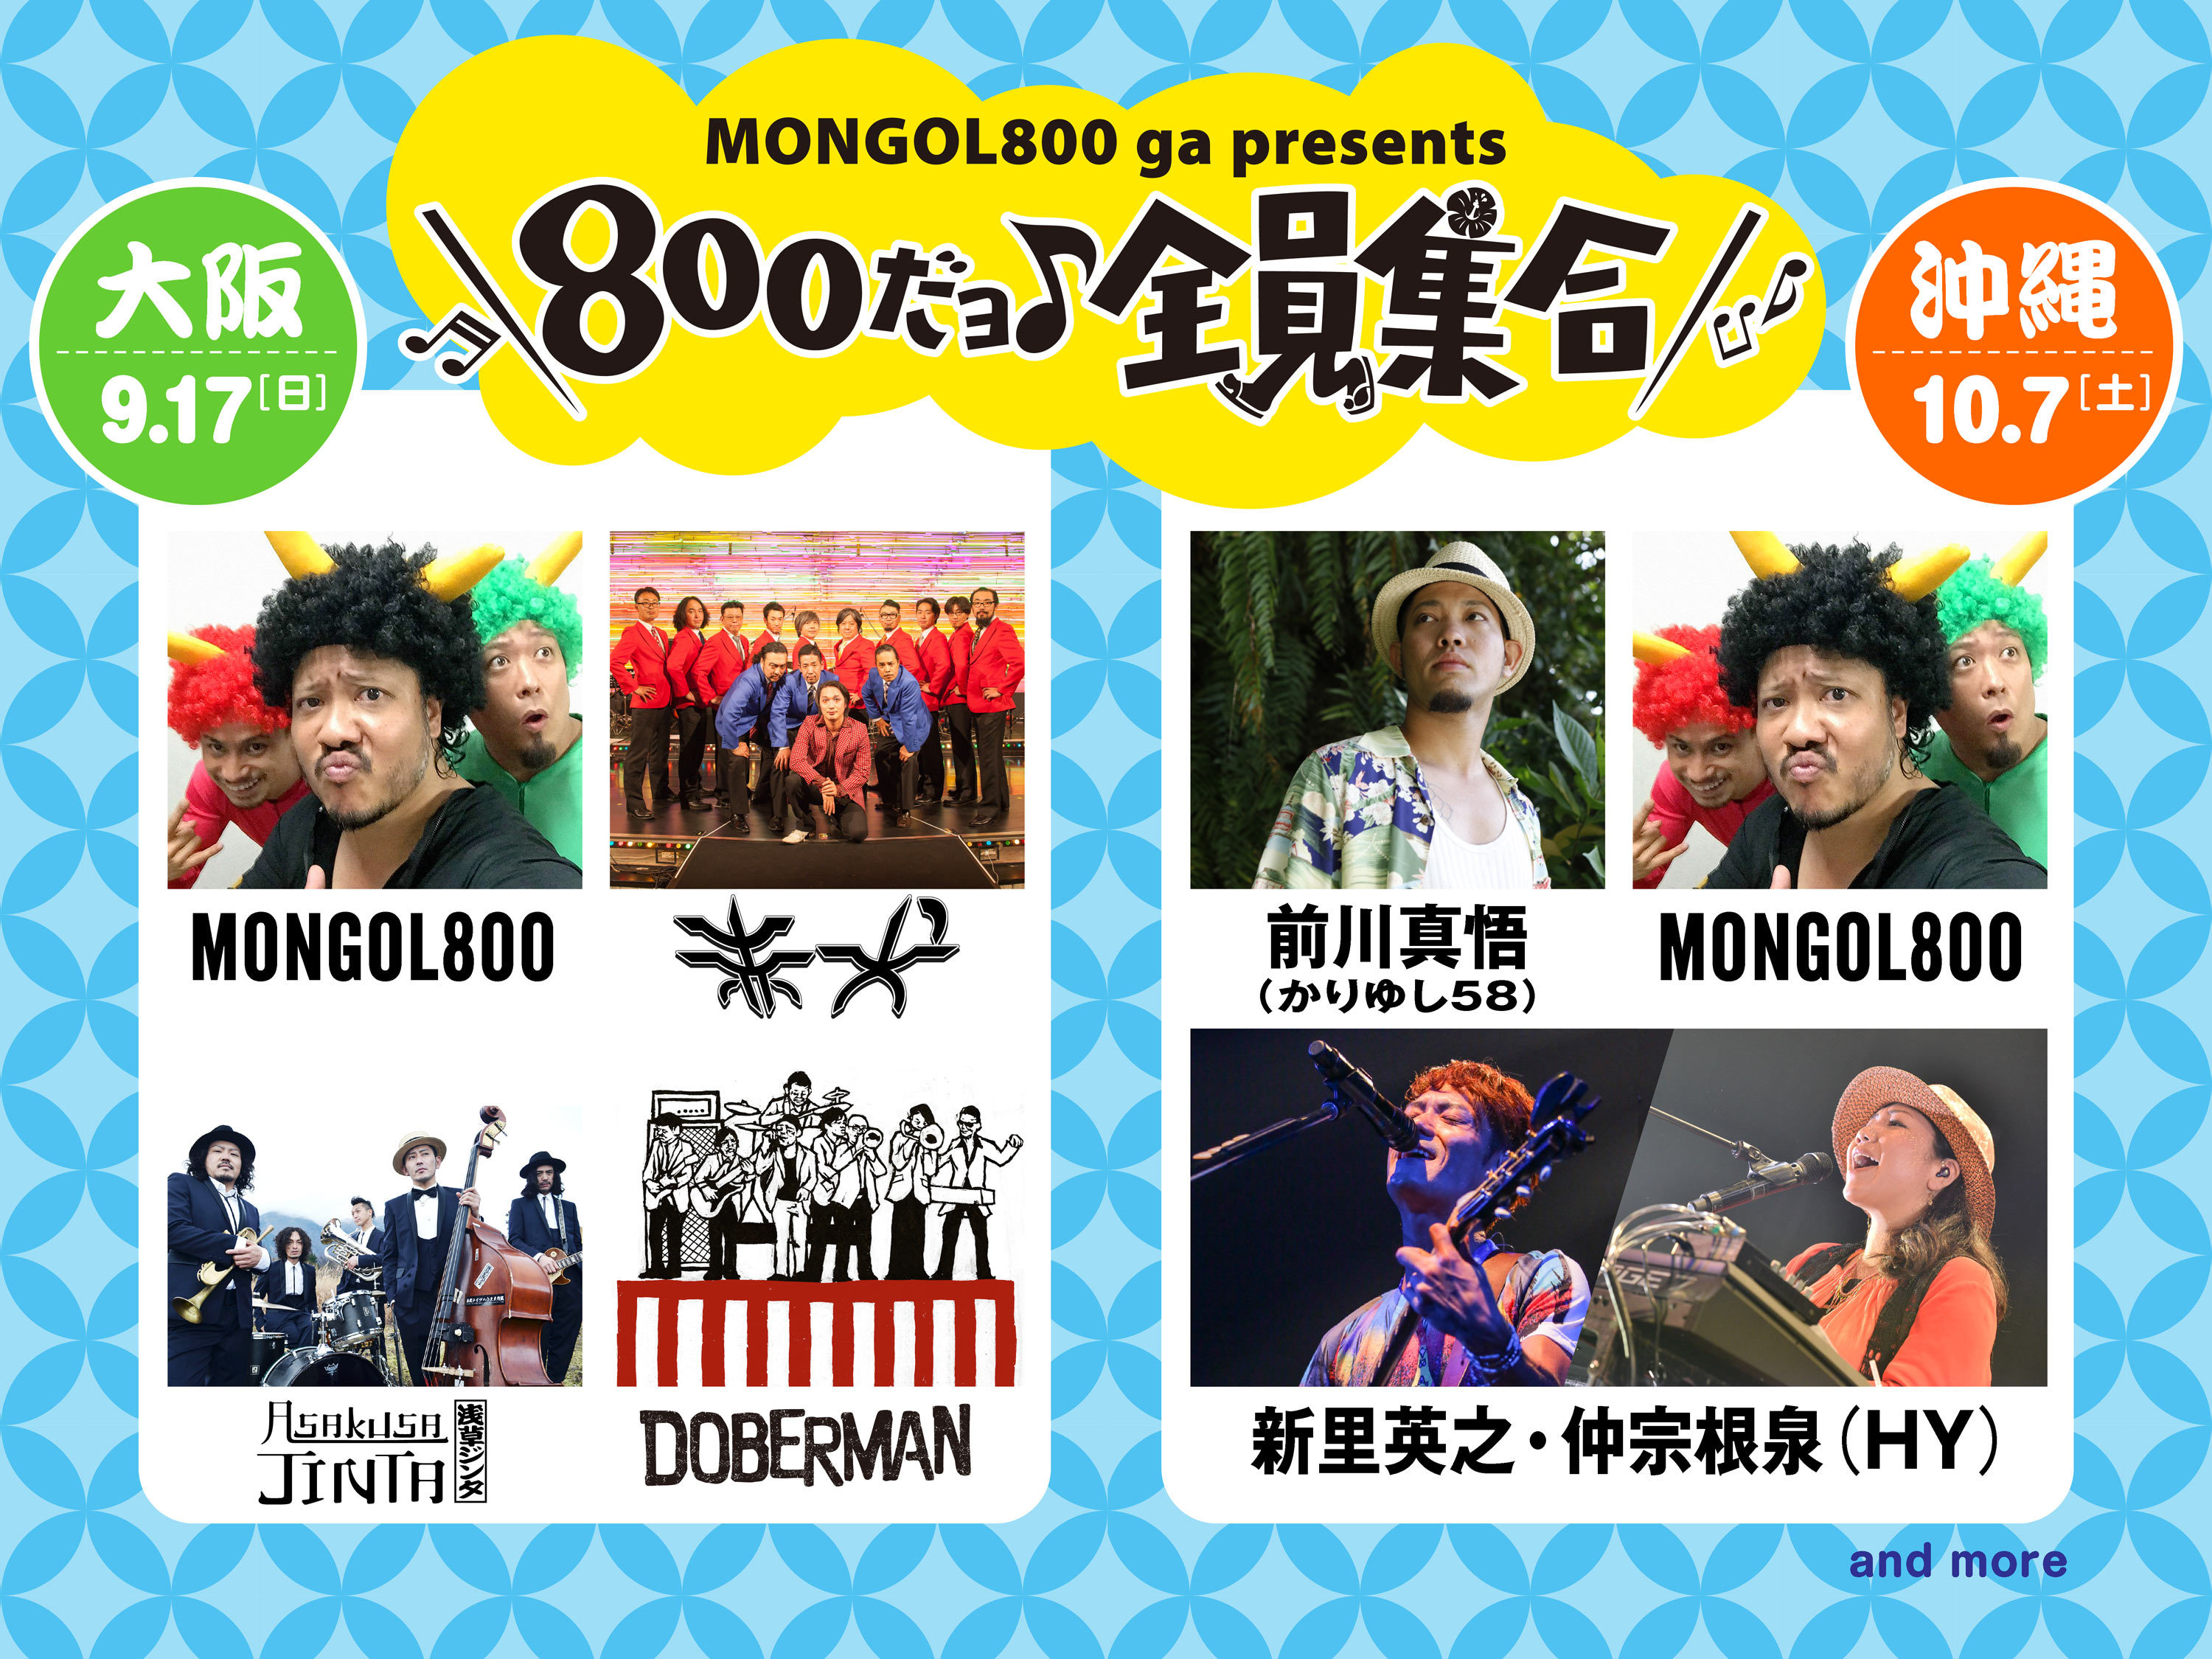 MONGOL800 ga presents『800だョ全員集合!!』